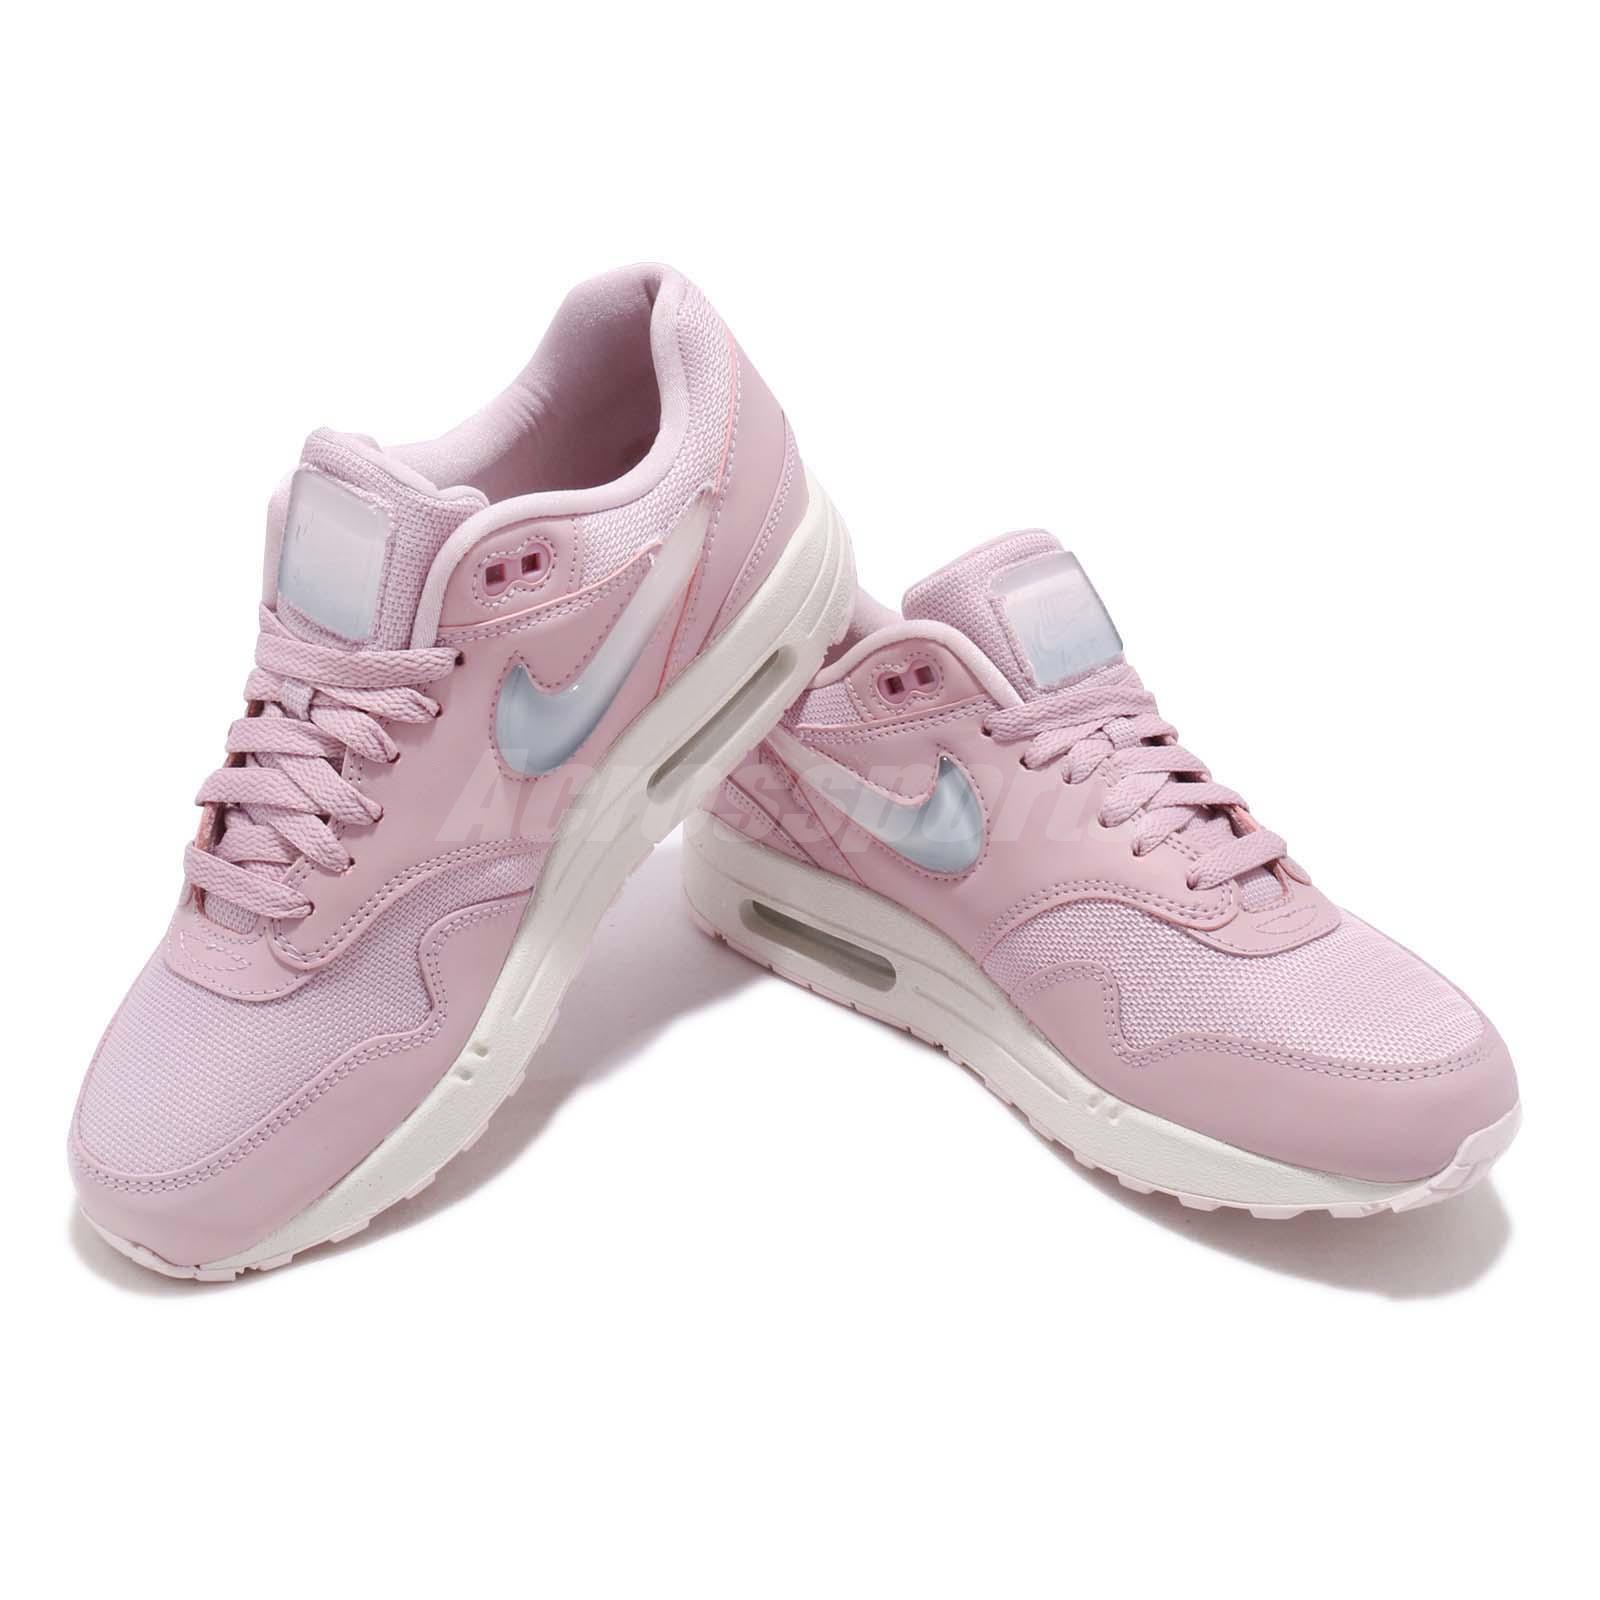 Details about Nike Wmns Air Max 1 JP Jelly Puff Swoosh Pink Womens Running Shoes AT5248 500